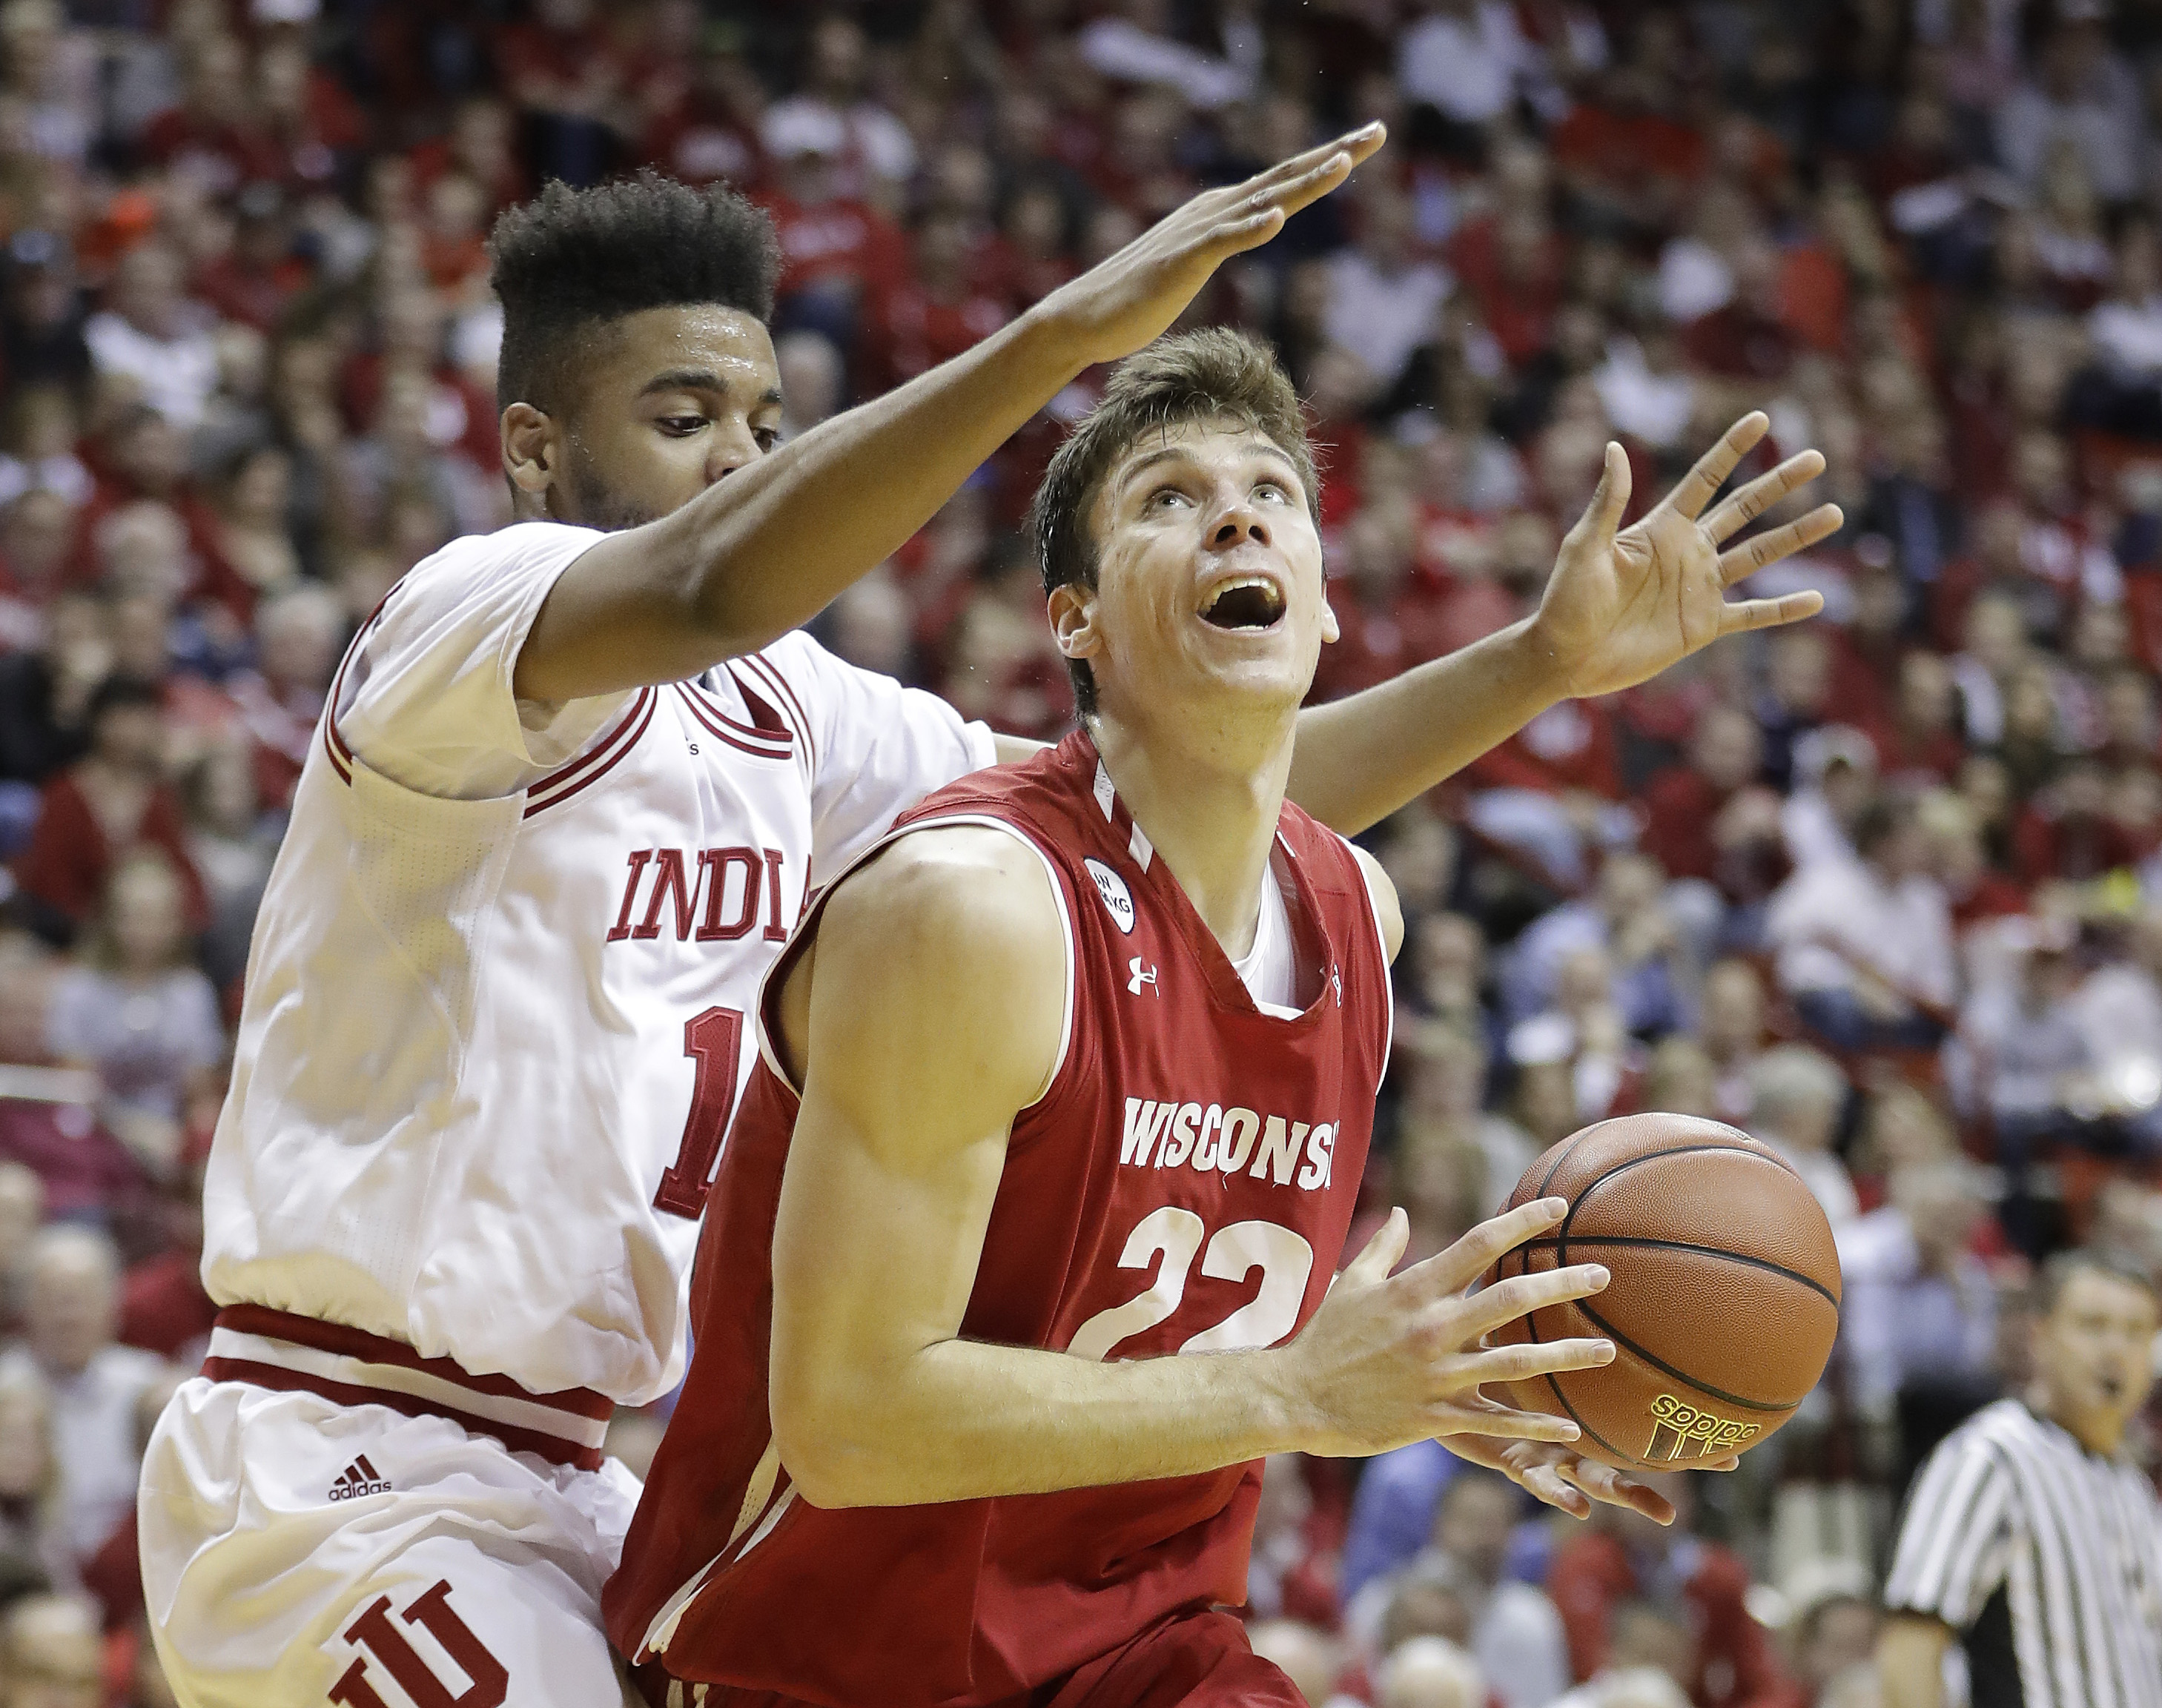 Wisconsin's Ethan Happ is defended by Indiana's Juwan Morgan during the first half of an NCAA college basketball game Tuesday, Jan. 3, 2017, in Bloomington Ind. (AP Photo/Darron Cummings)